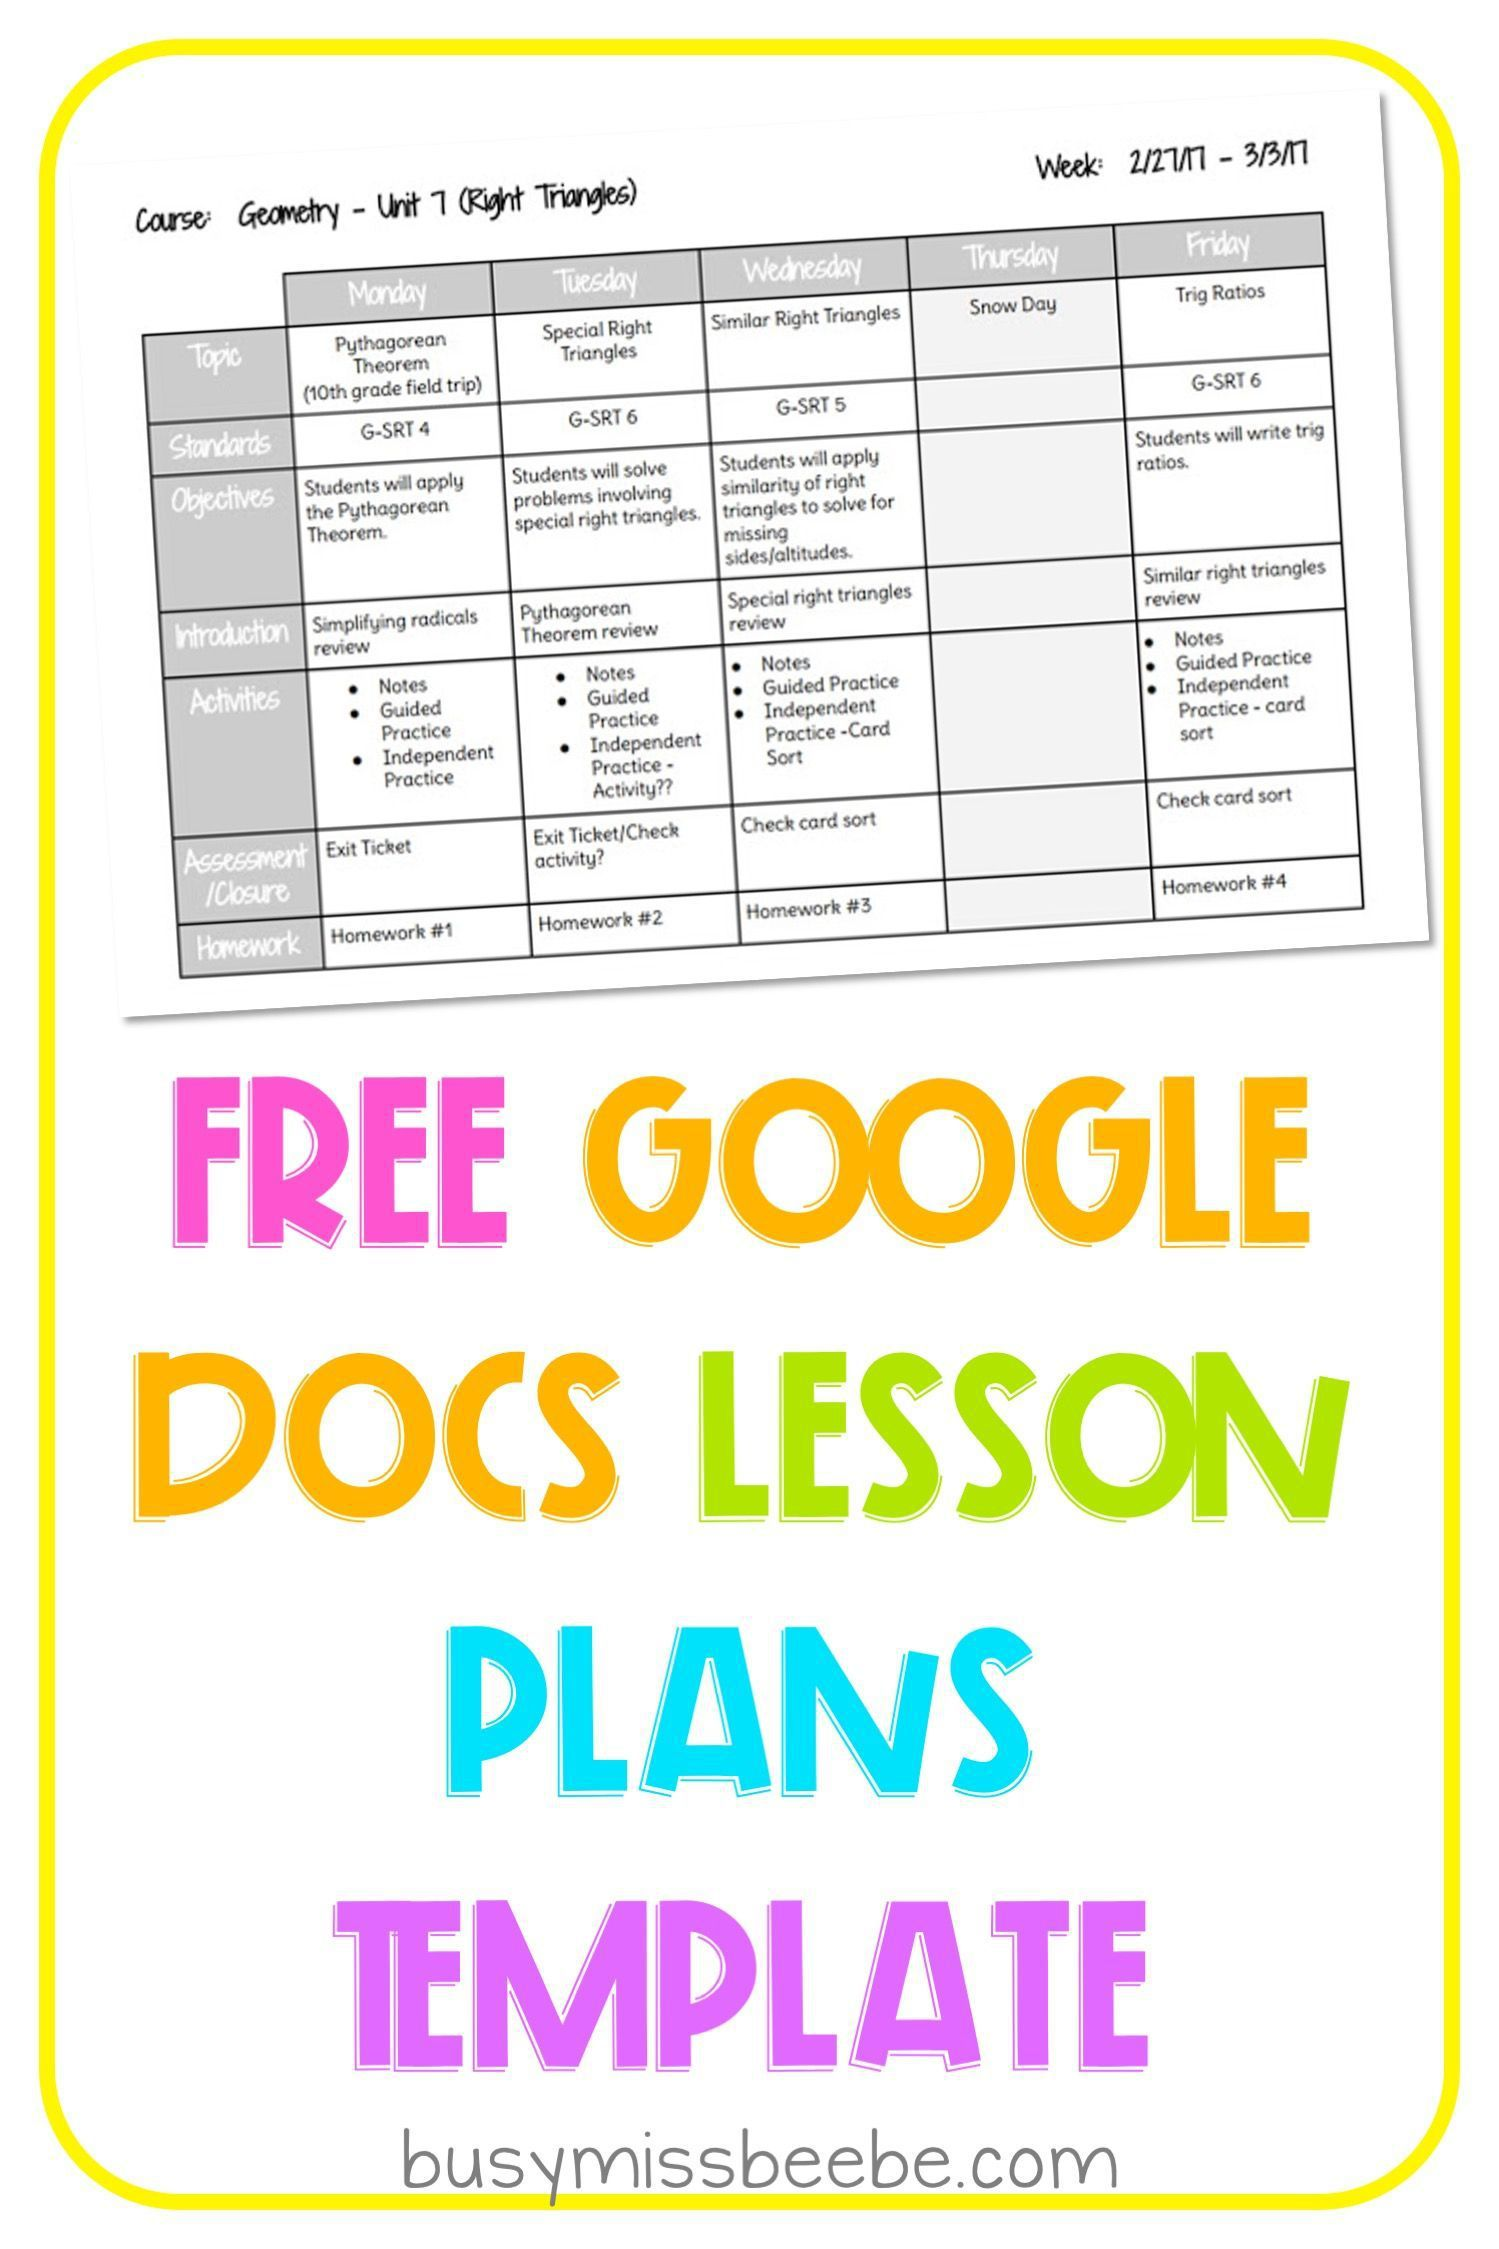 000 Wonderful Free Weekly Lesson Plan Template Google Doc Picture Full